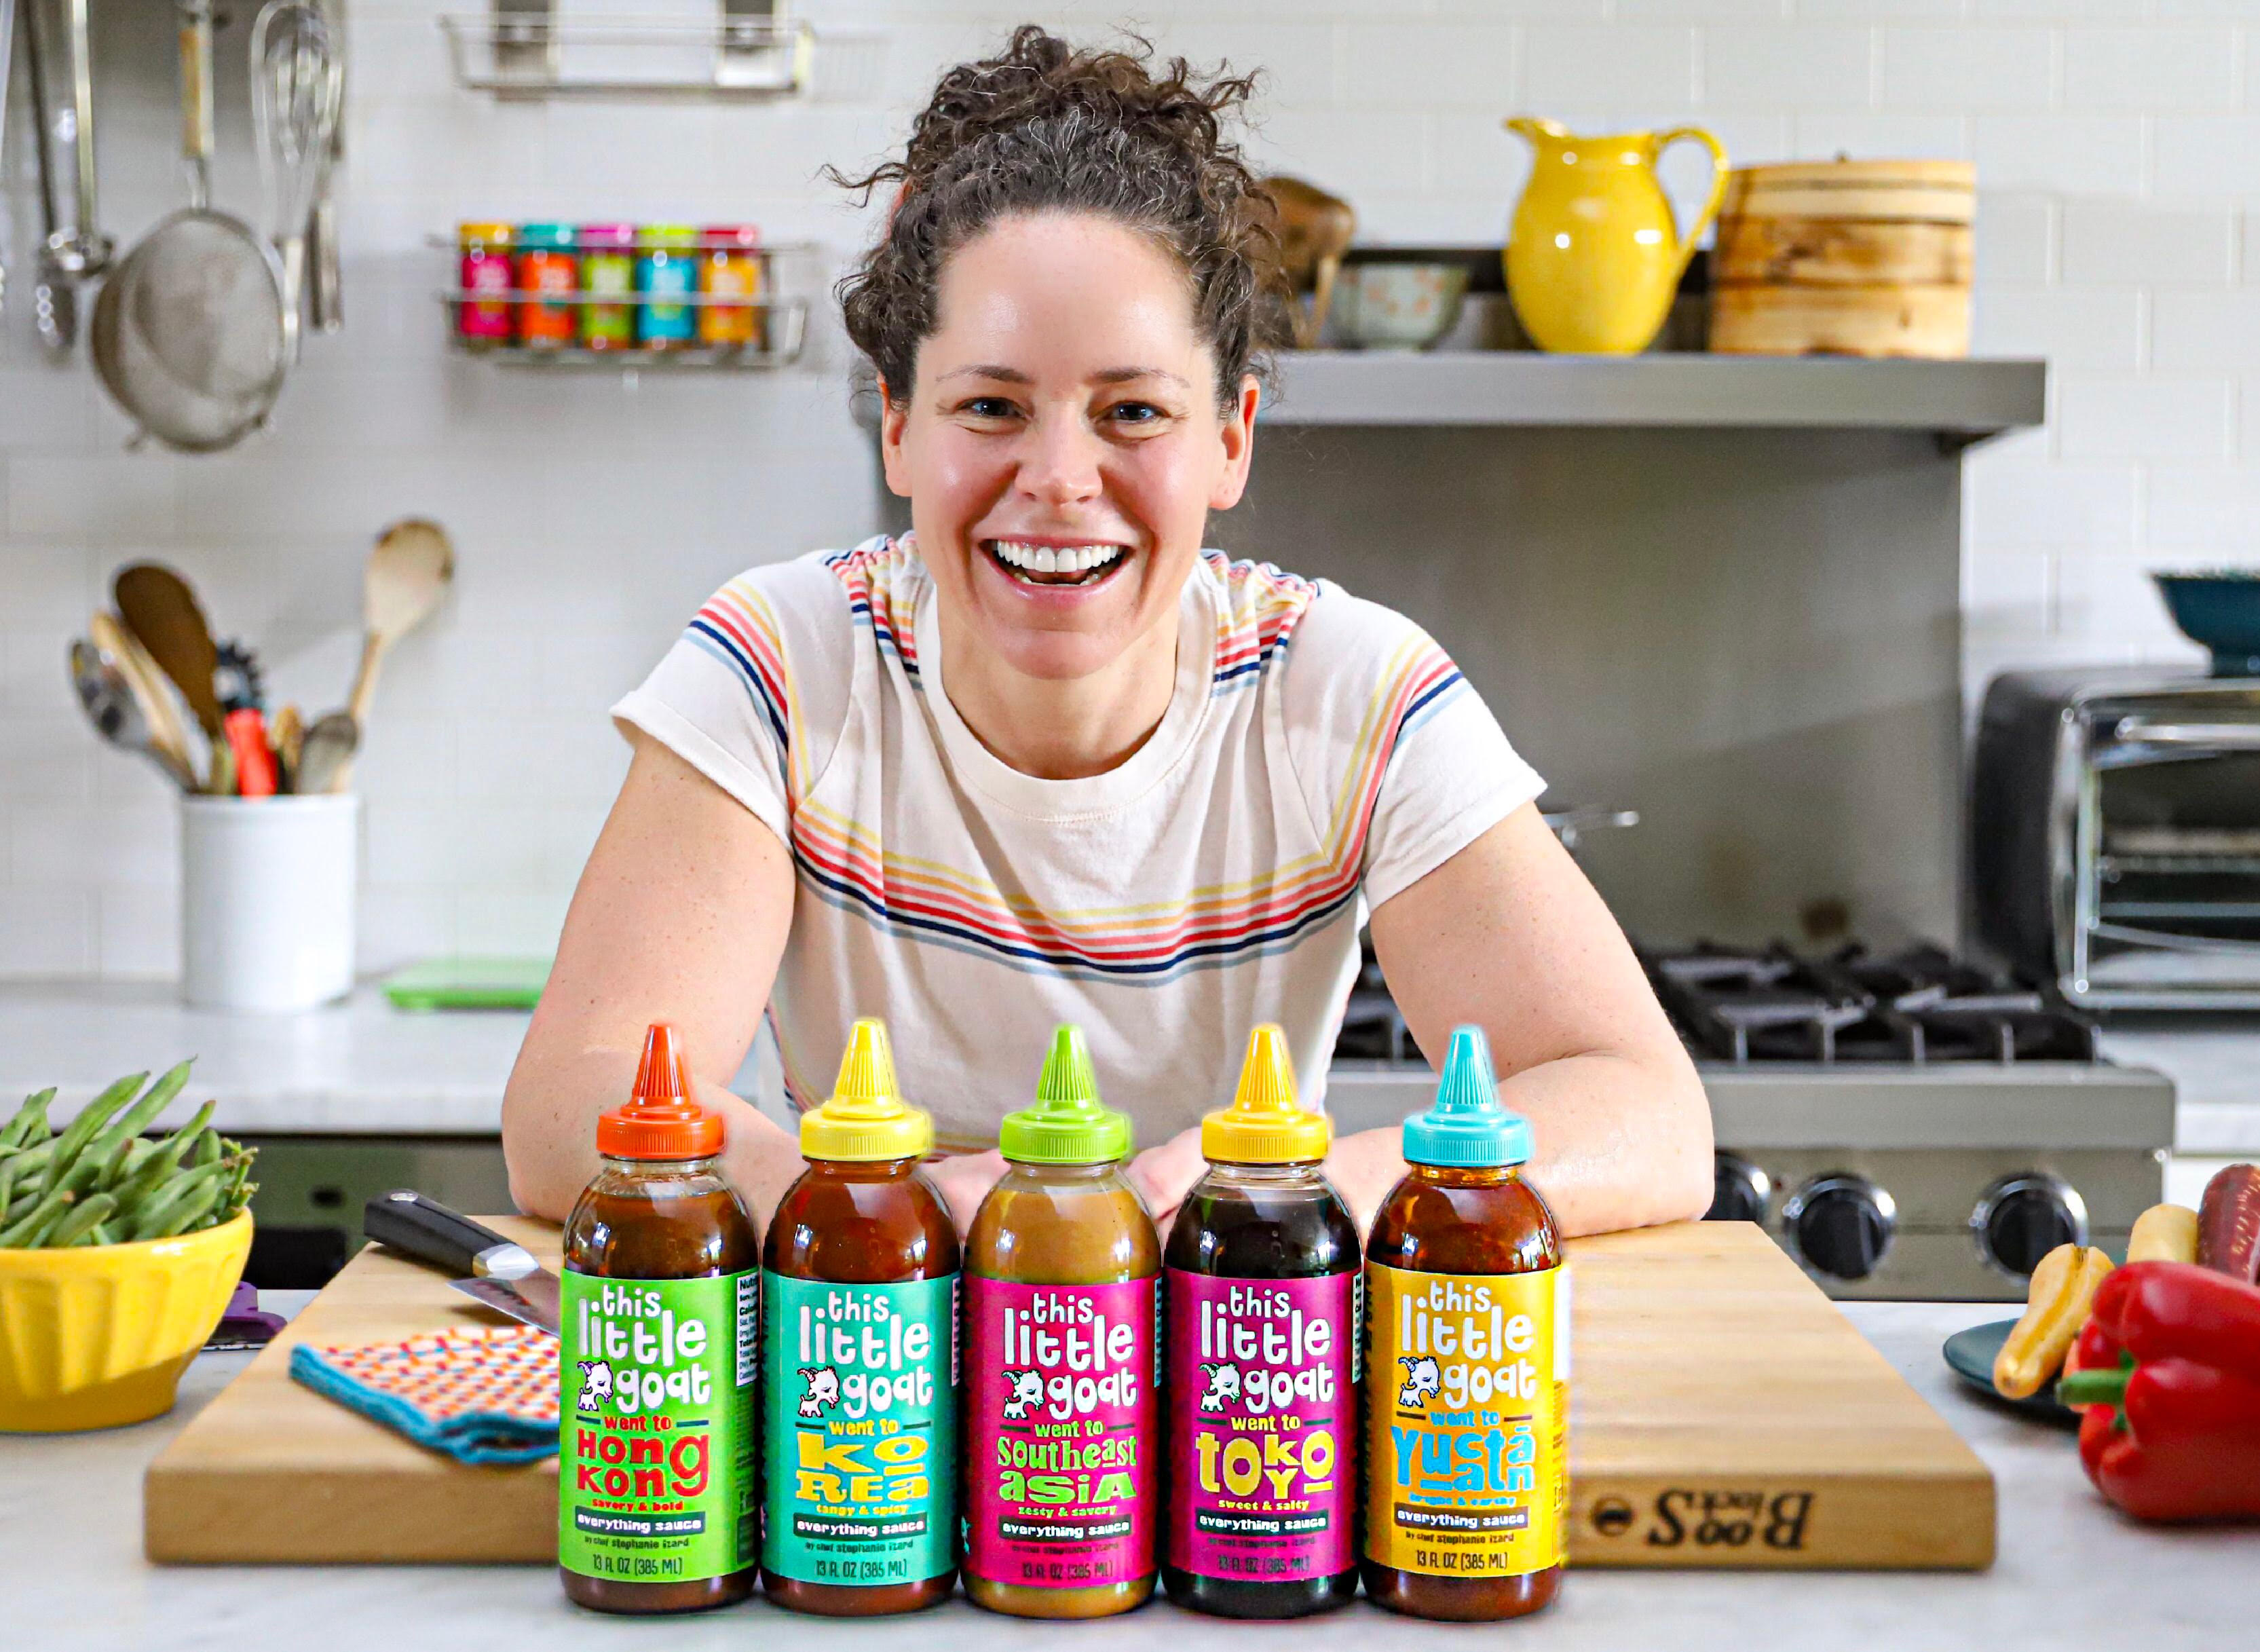 Stephanie Izard, a white woman with curly dark hair, smiles widely and leans on a cutting board behind a row of bottled sauces.